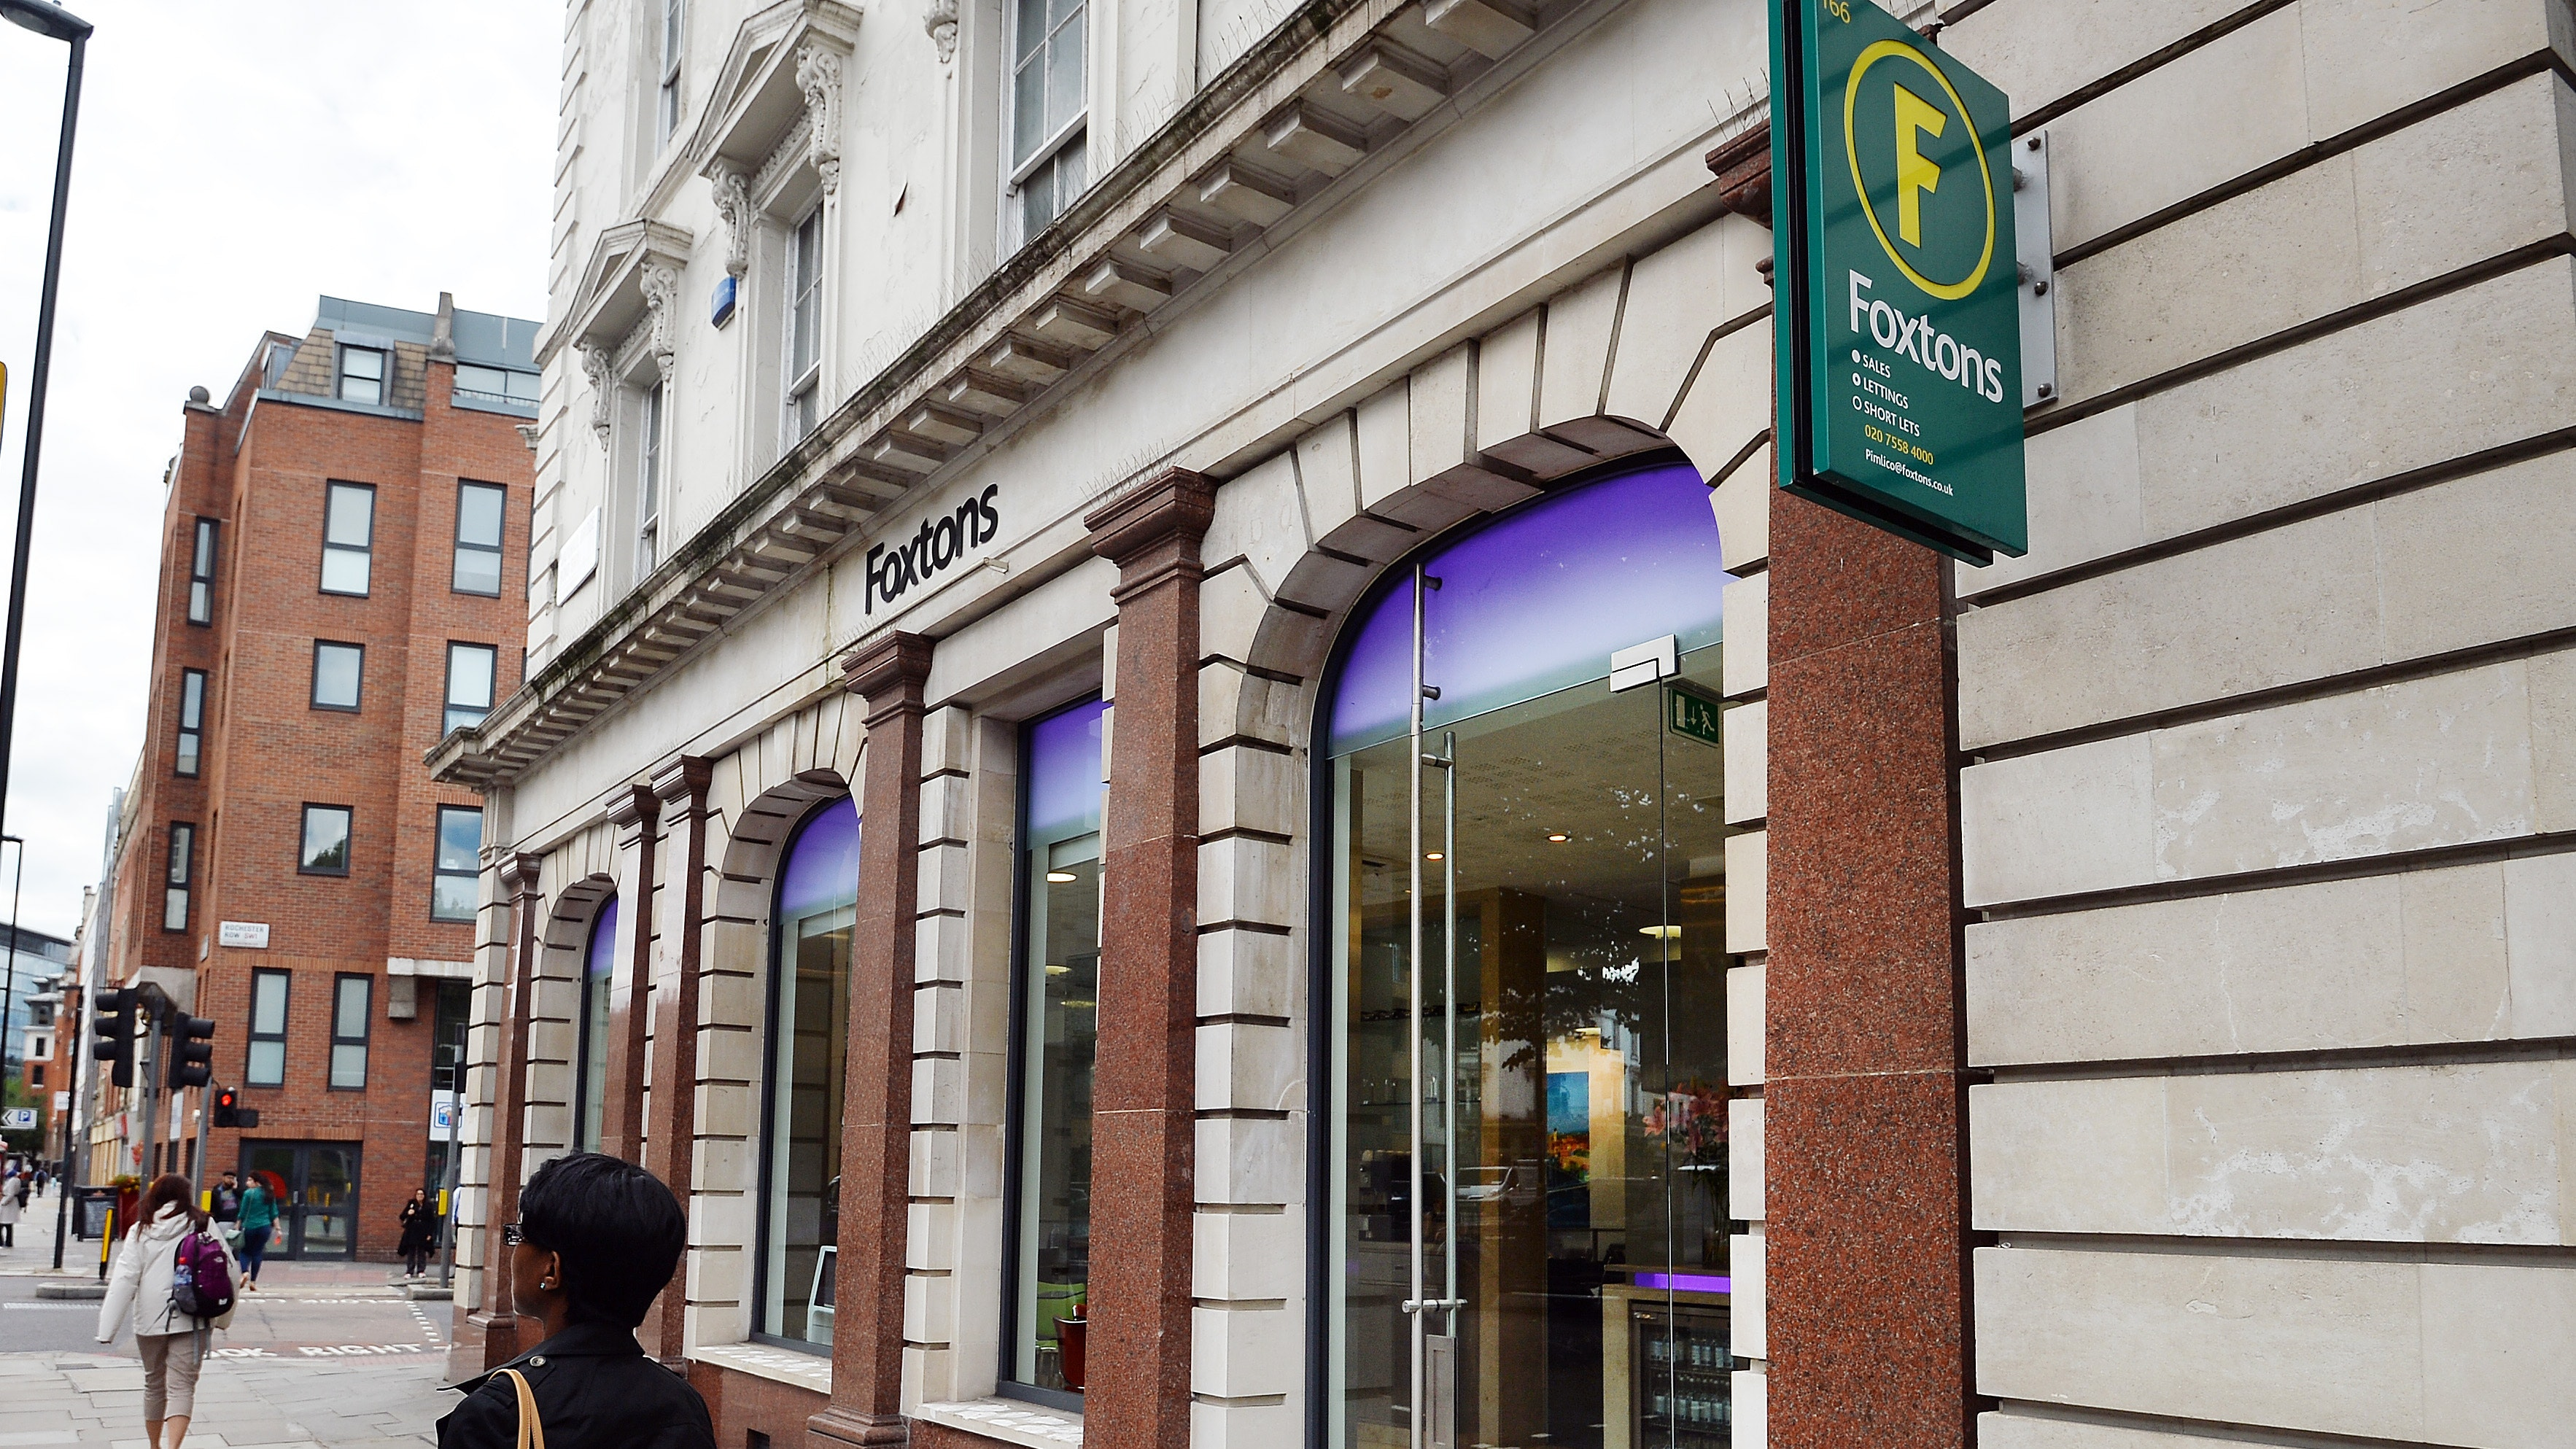 Foxtons profits fall 65% as London market slows